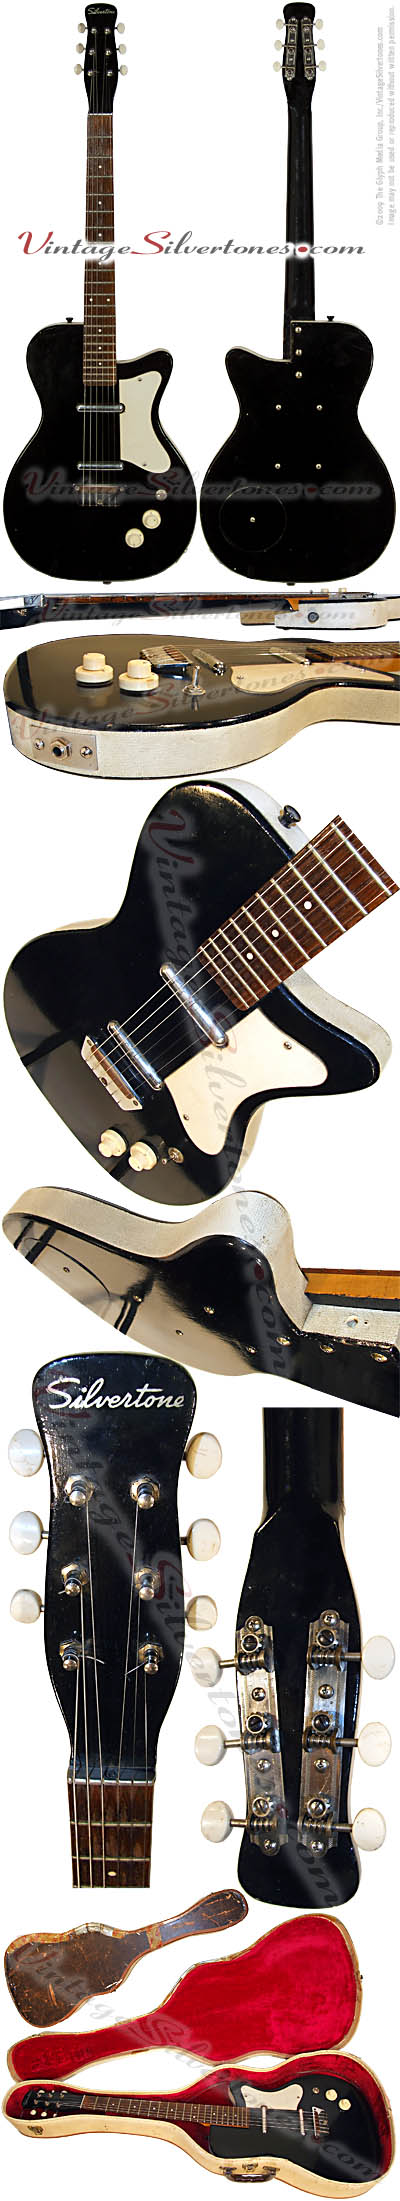 Silvertone 1303 made by Danelectro U2, two pickup, electric guitar, semi-hollow body, black, masonite body, lipstick pickup, made in 1958